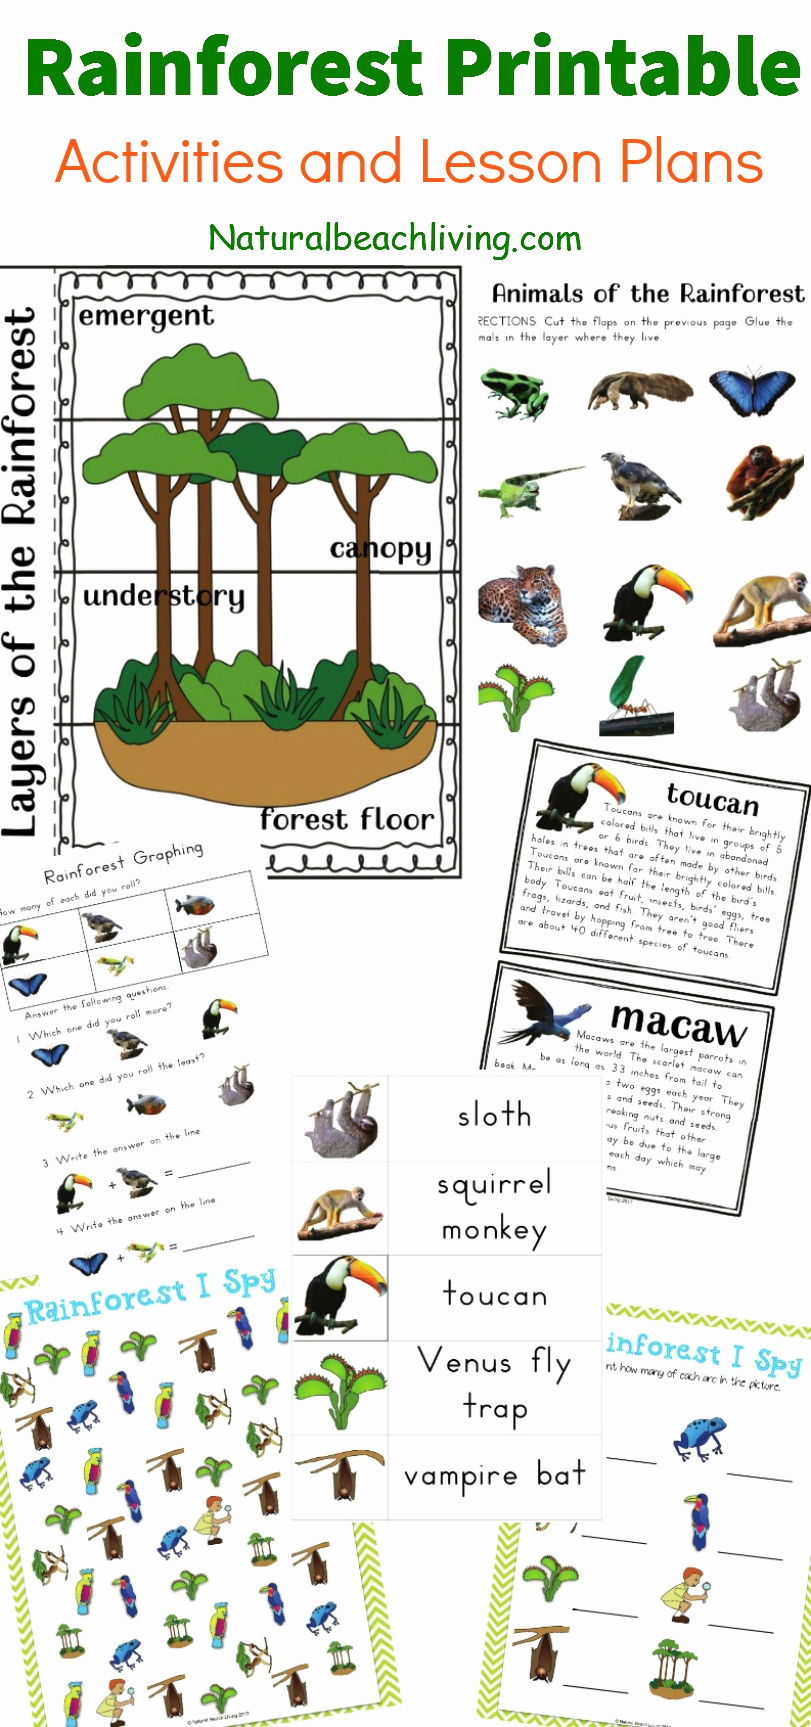 Free Habitat Worksheets Awesome the Best Rainforest Printable Activities for Kids